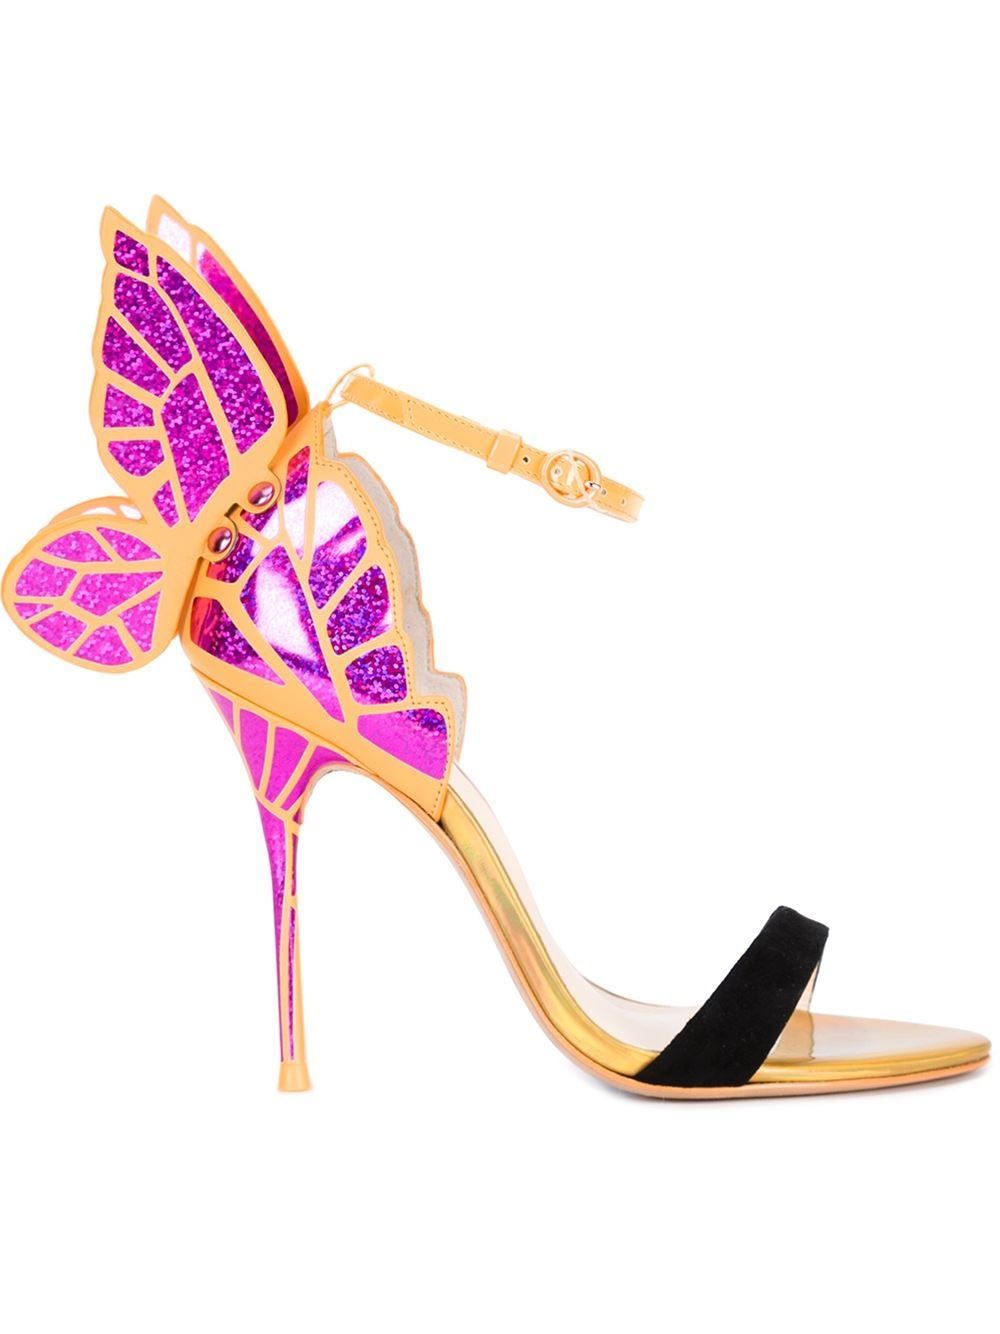 eefd3f6d7eff Designer Shoes For Women. Sophia Webster 'chiara' Butterfly Sandals -  Farfetch.com